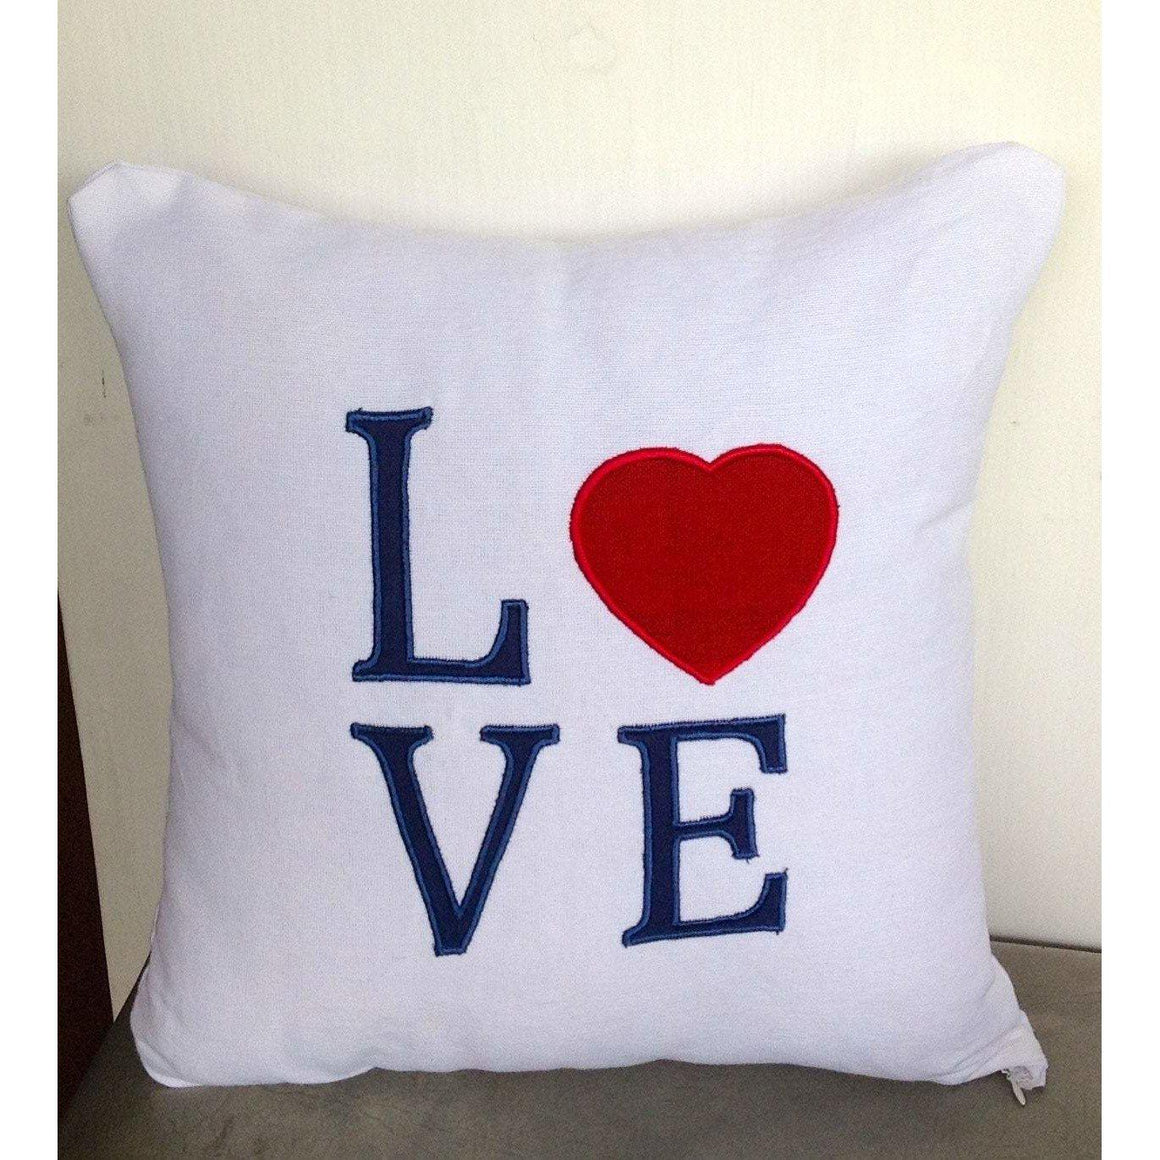 50% OFF Sale Red Heart Pillows, Red Heart Gifts, Valentine Red Heart Romantic Gift Ideas for Best romantic gifts for her, Love Pillow - Snazzy Living